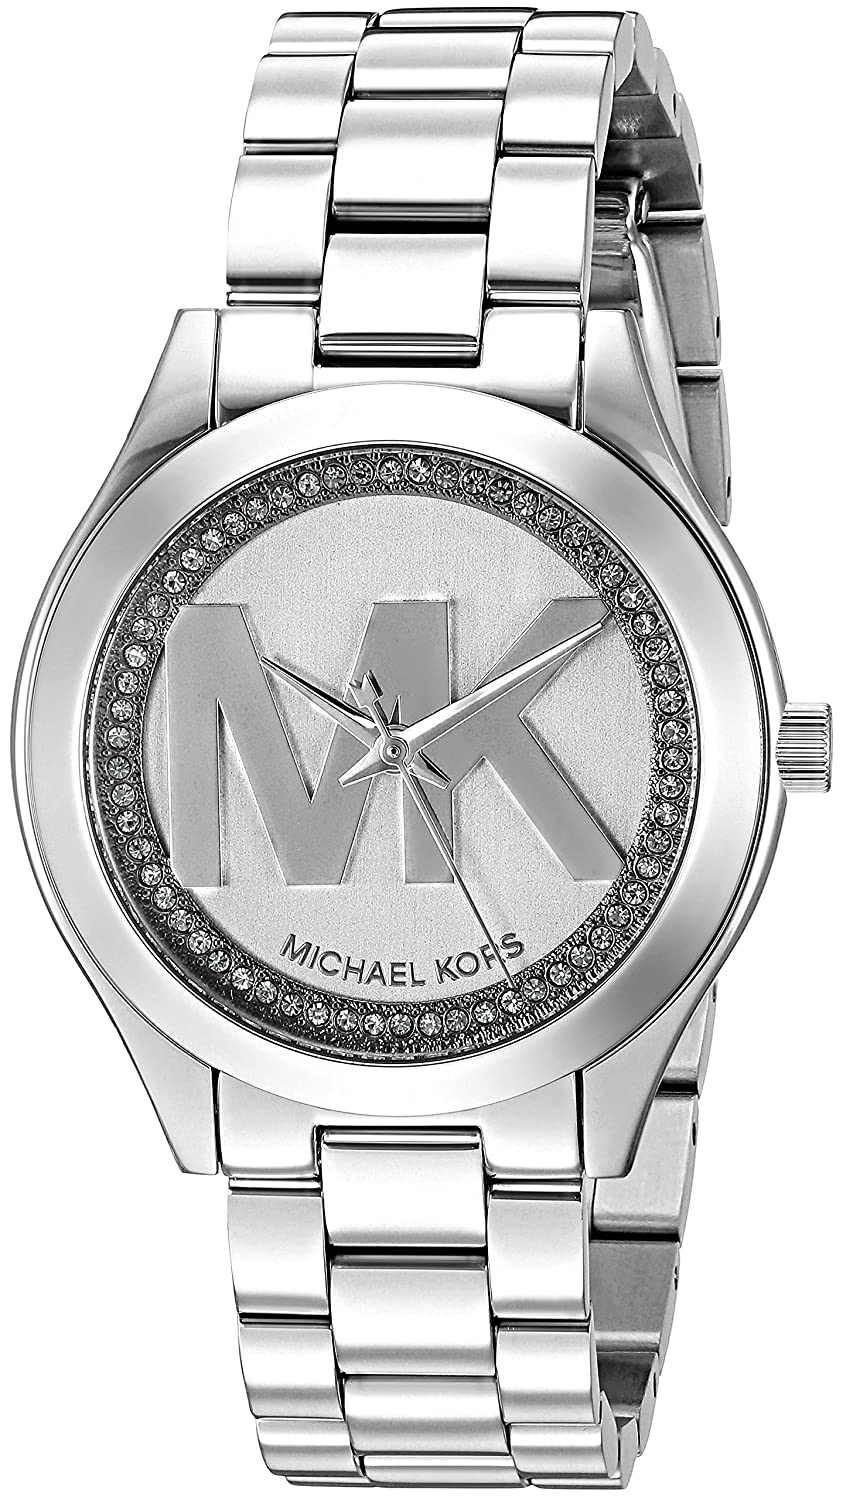 Amazon.com: Michael Kors Womens Mini Slim Runway Logo Silver-Tone Watch MK3548: Michael Kors: Watches